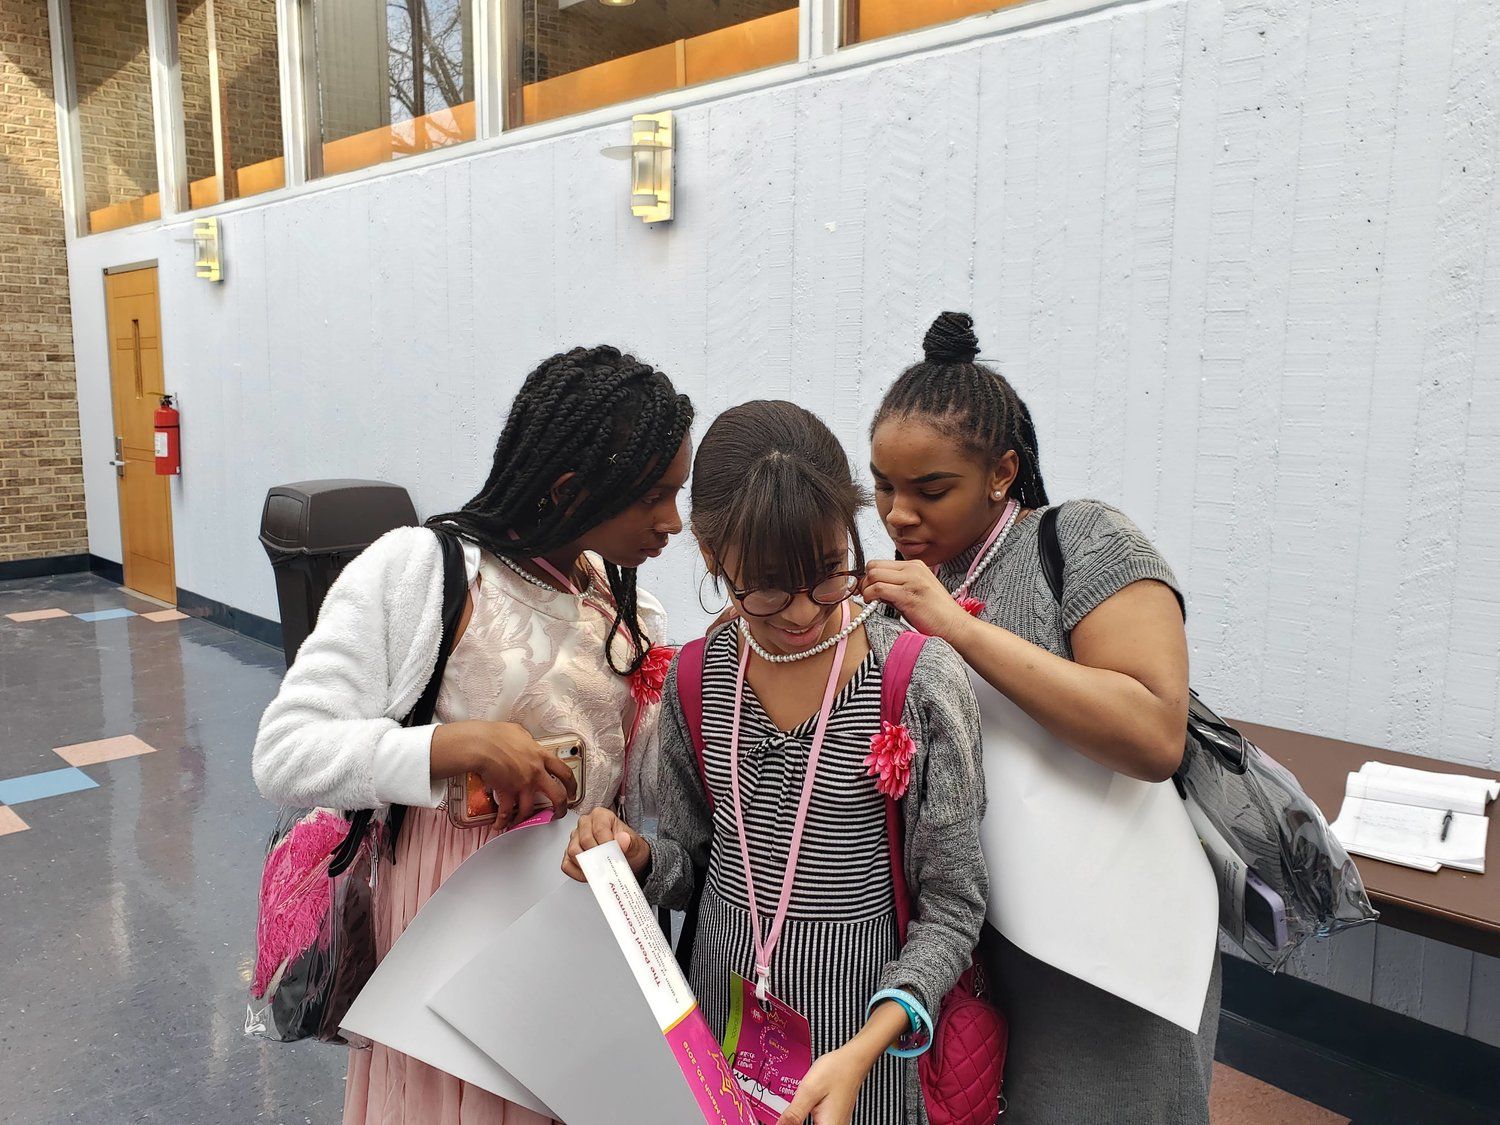 Shortly after receiving their pearl necklaces, Dodd seventh grader, Angela Morris, left and eighth grader Zun Eccleston, left, helped Nathalia Montero, center, fix the clasp of her necklace.